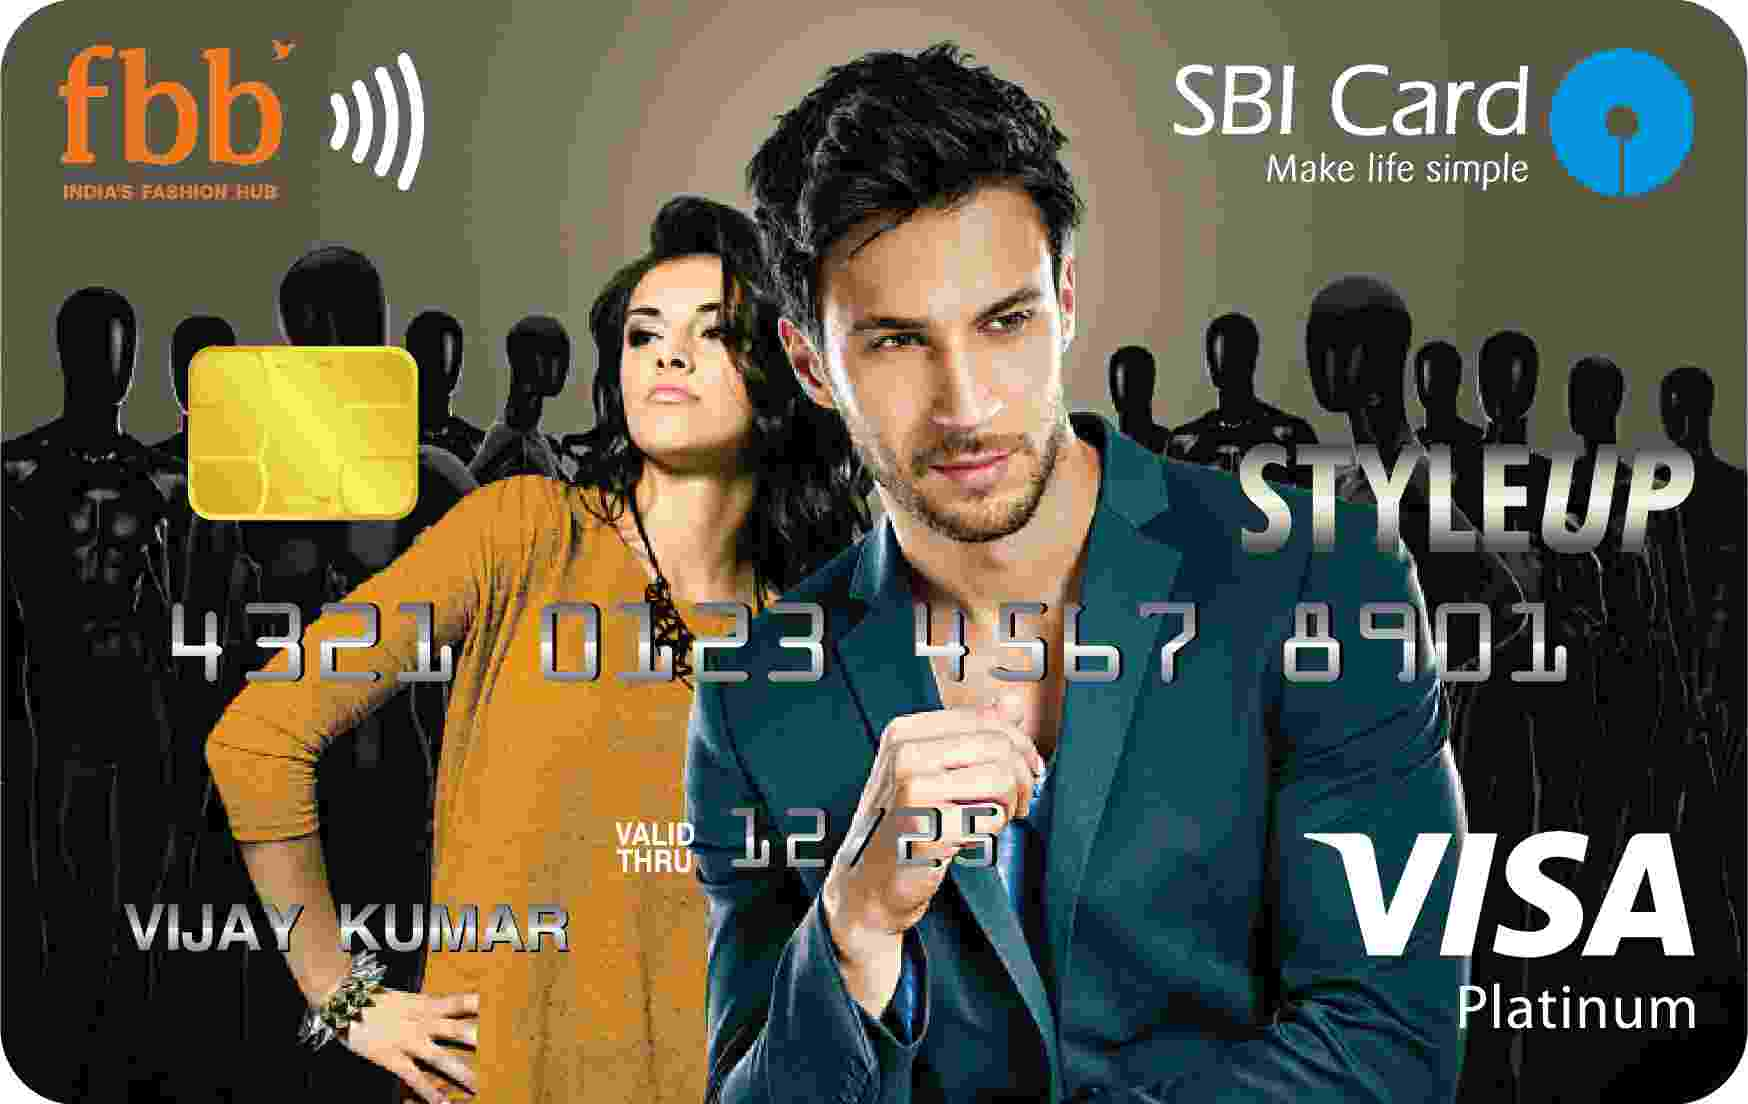 FBB SBI STYLEUP Contactless Card